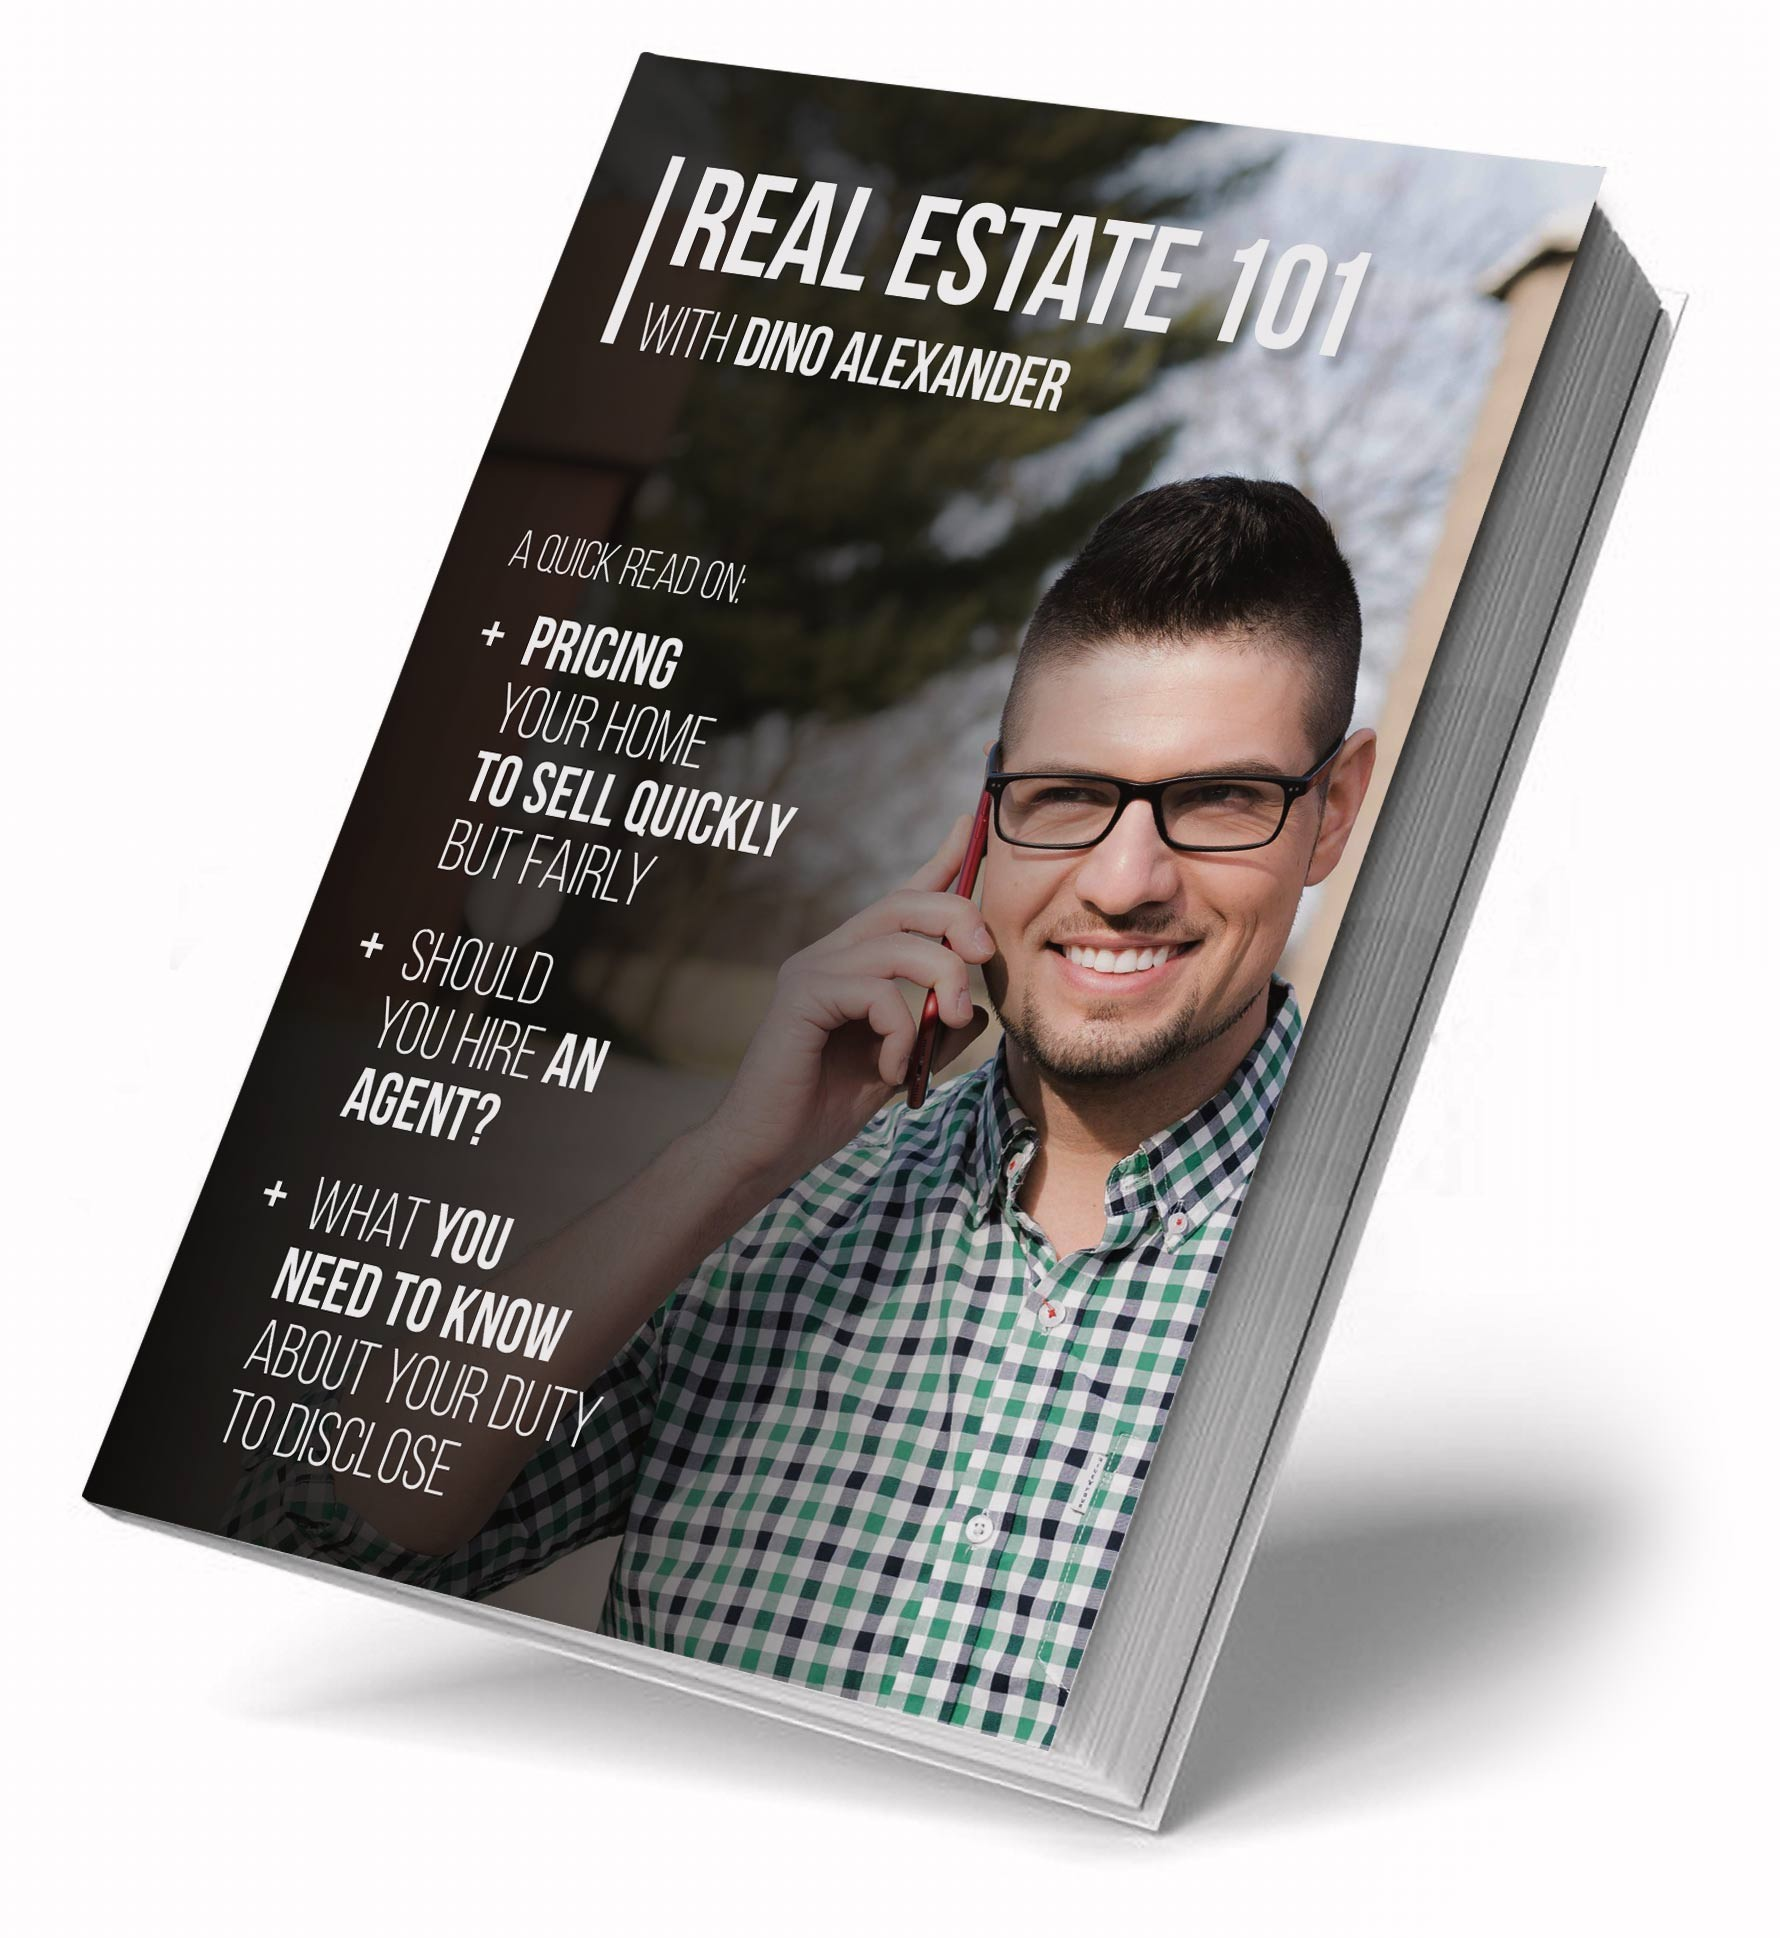 Real Estate 101 eBook by Dino Alexander